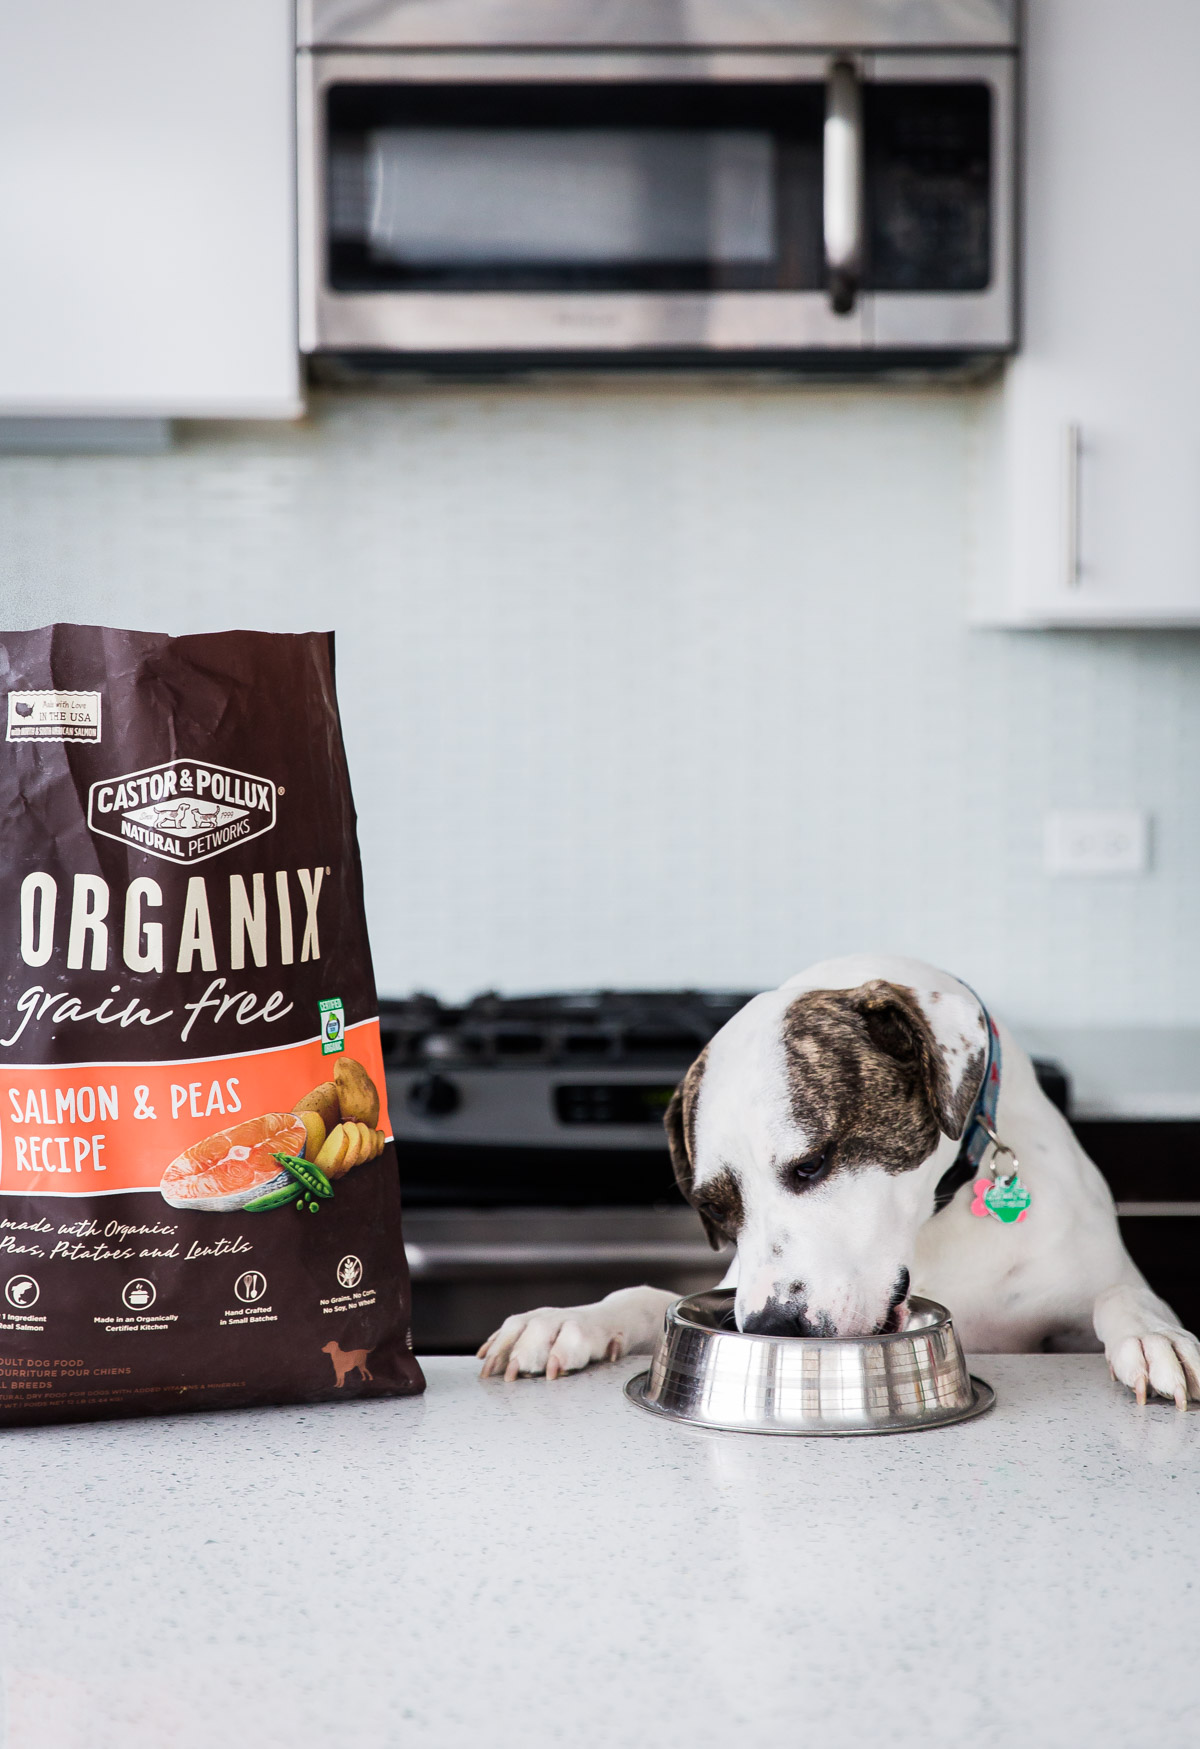 Adventures with Marley - fueled by Organix Grain-Free Dog Food